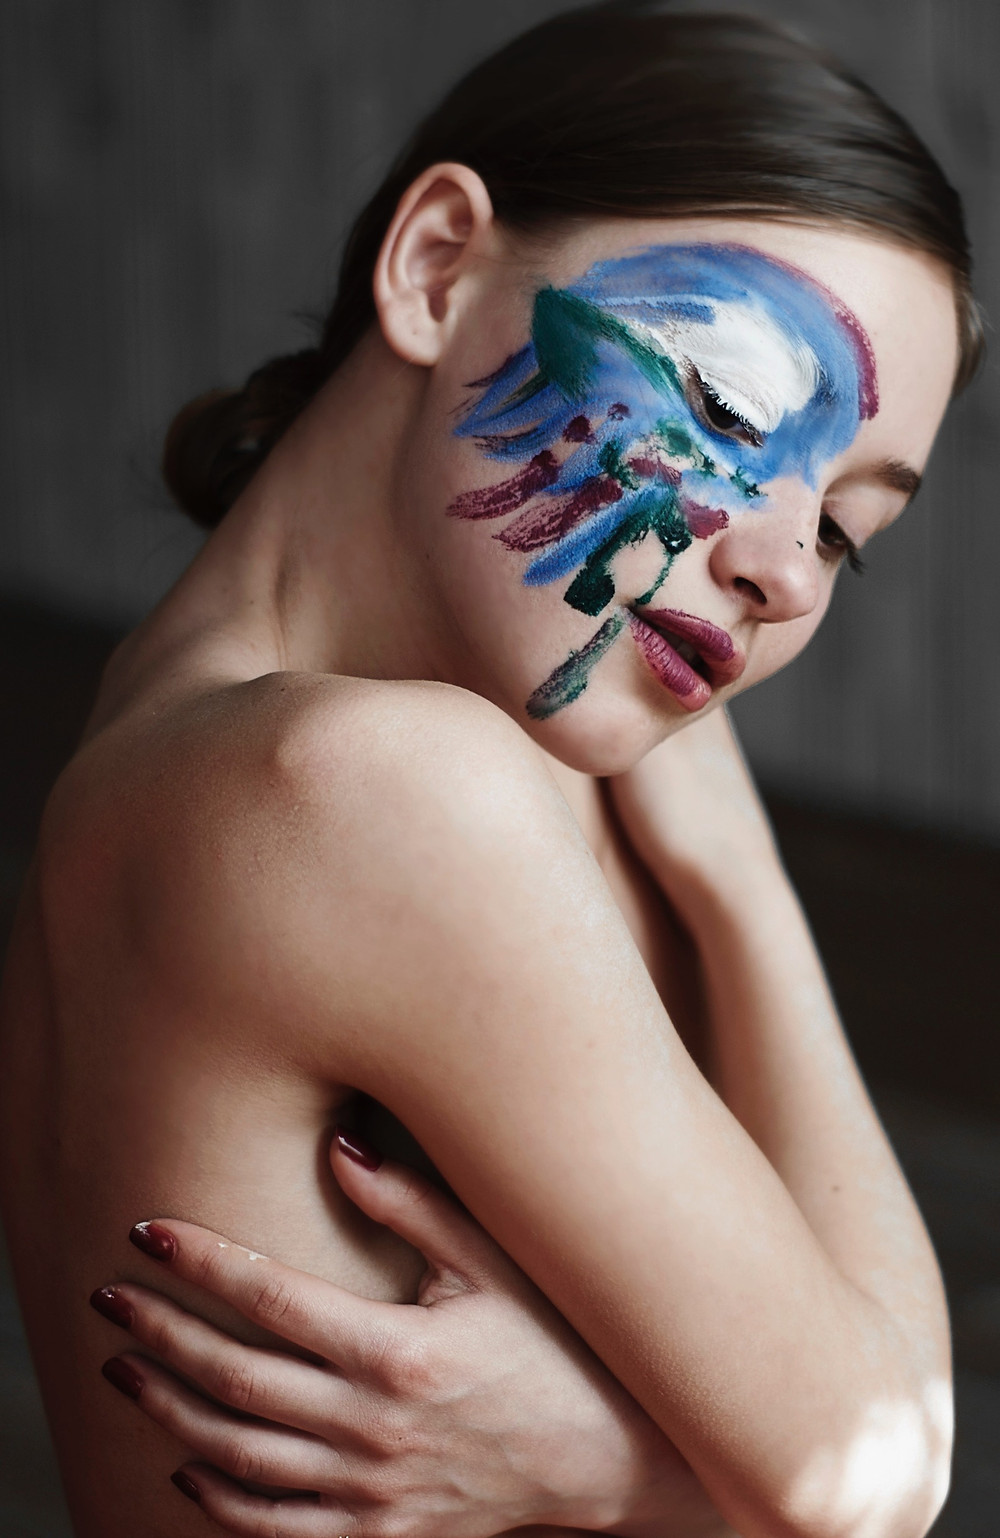 brunette woman with painted face hugging herself; by Svetlana Pochatun